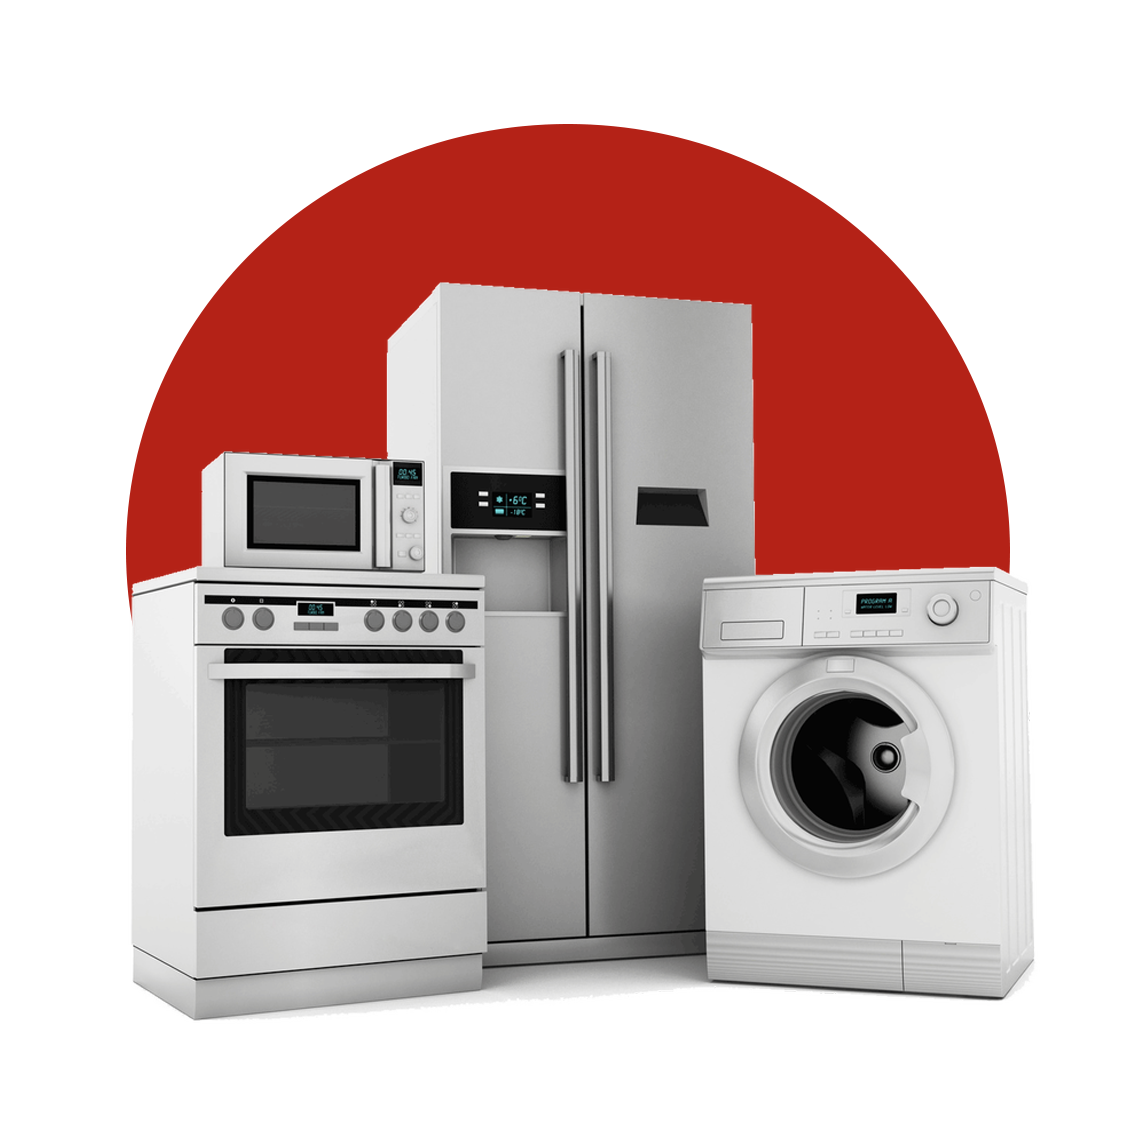 appliance repair brooklyn experts